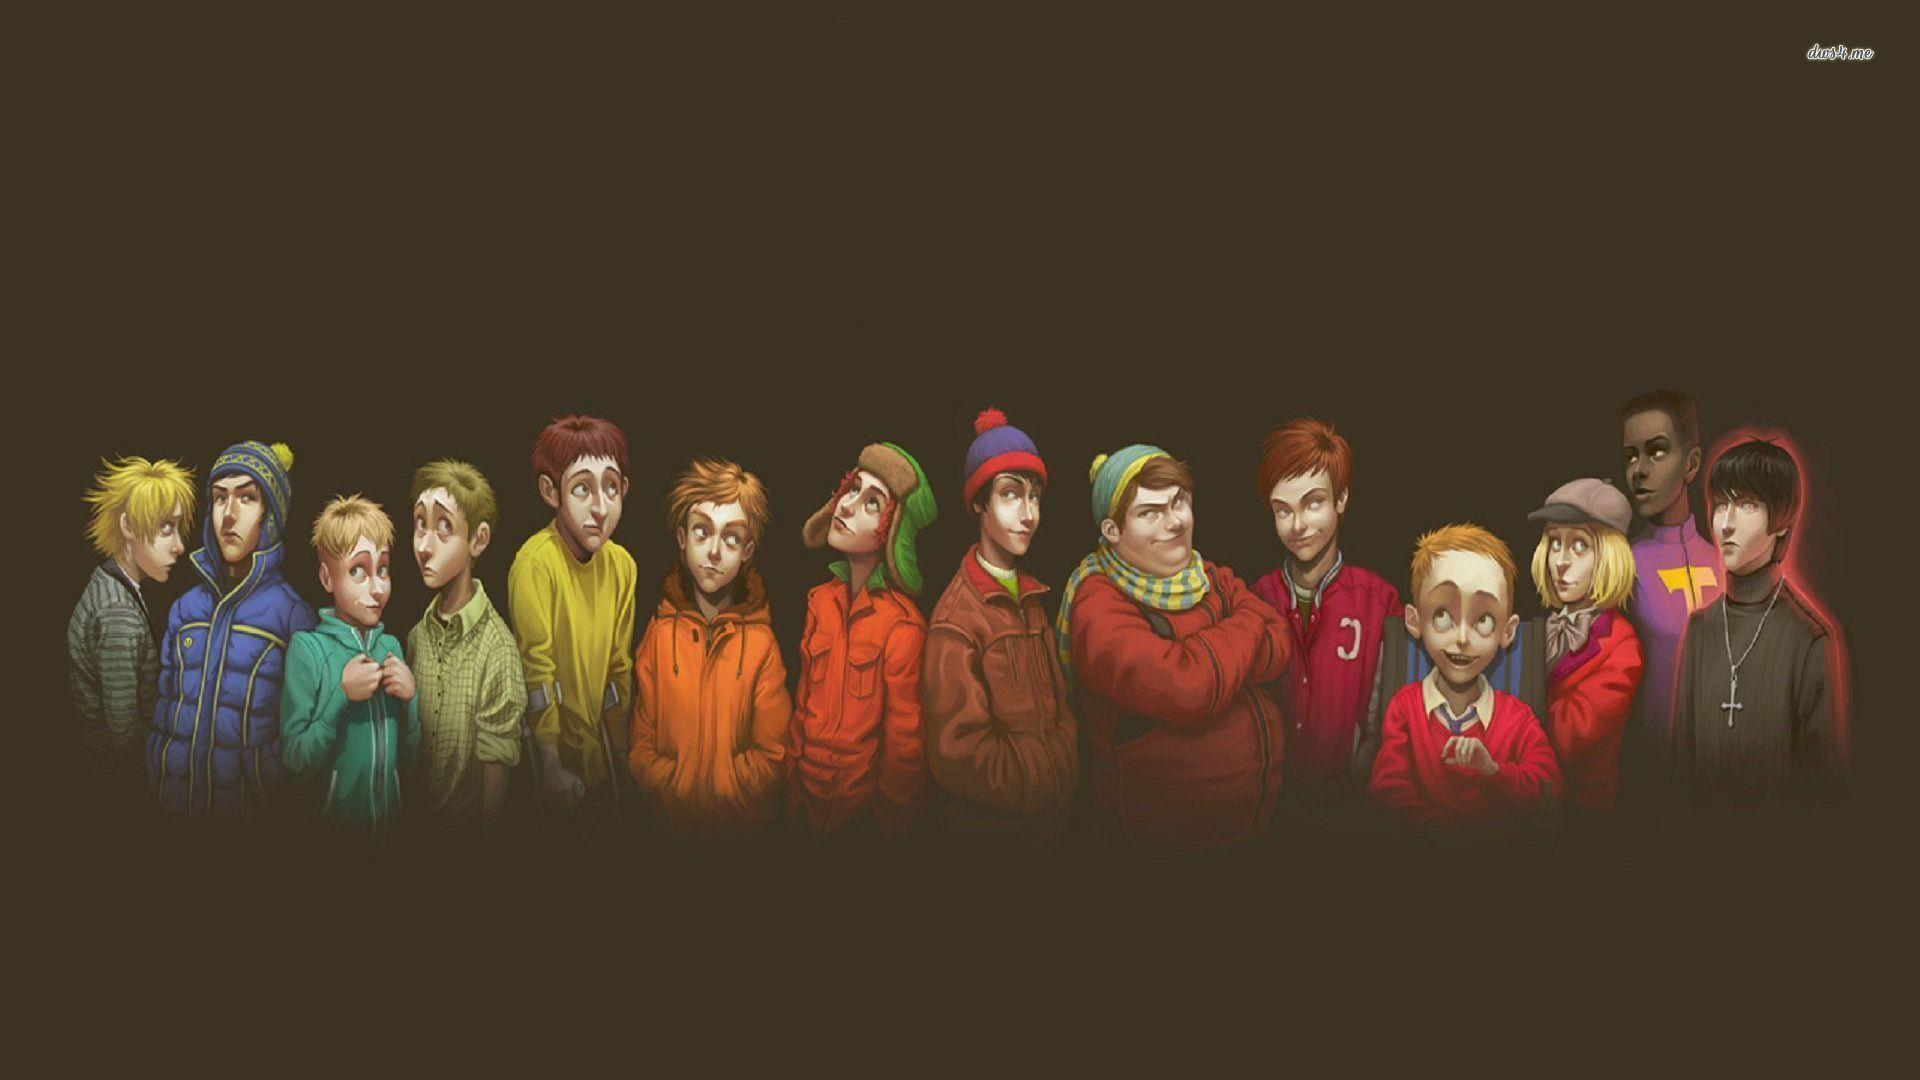 South park wallpapers wallpaper cave for Lustige wallpaper